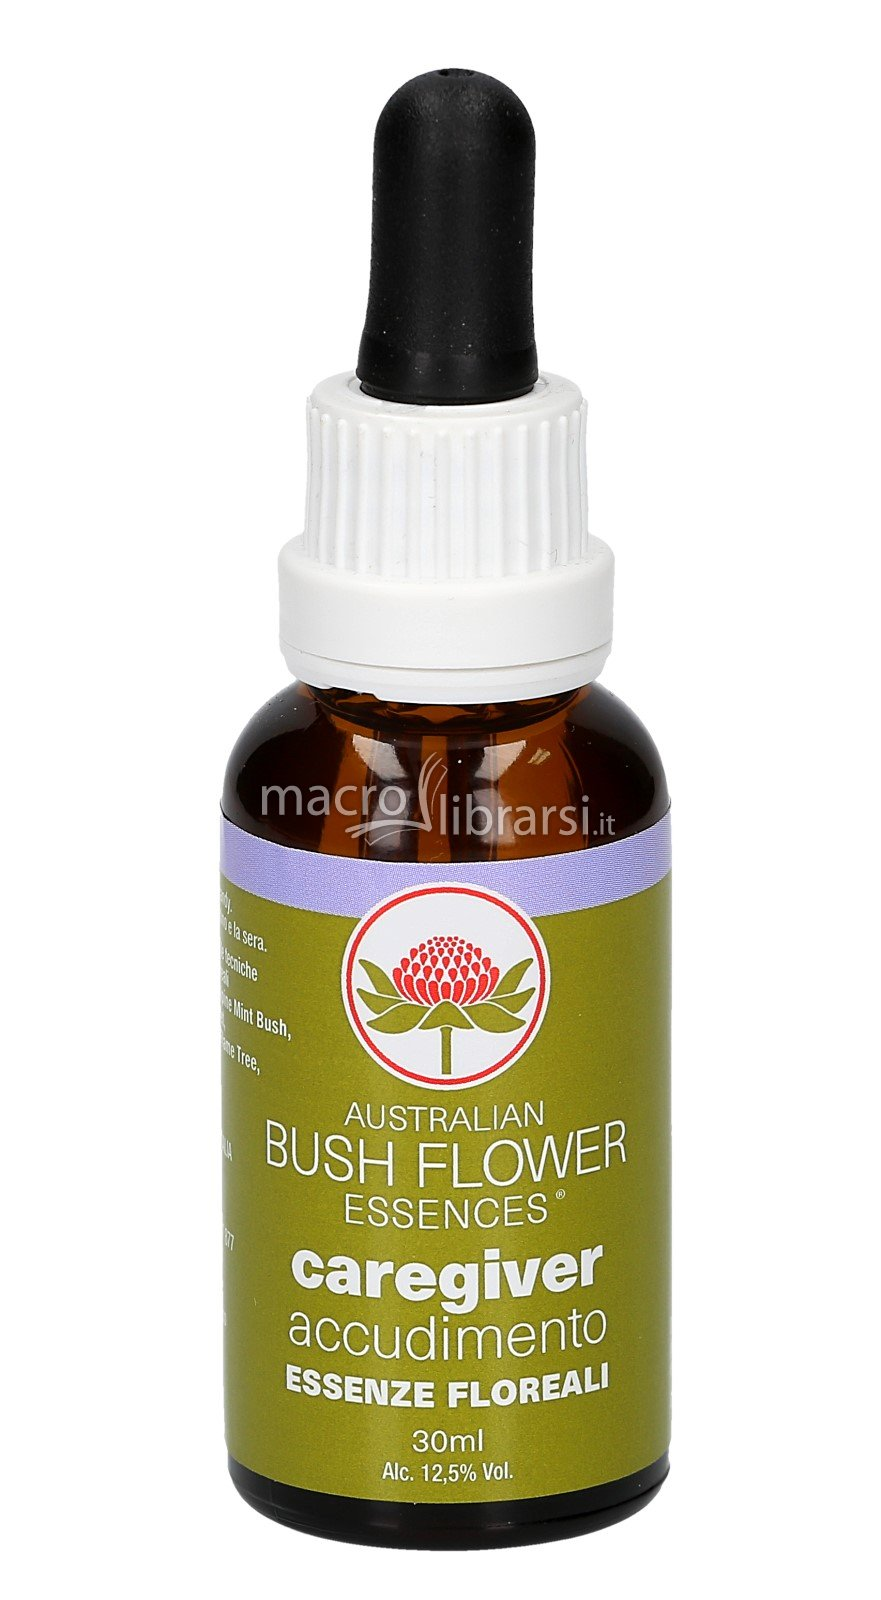 bush flower caregiver